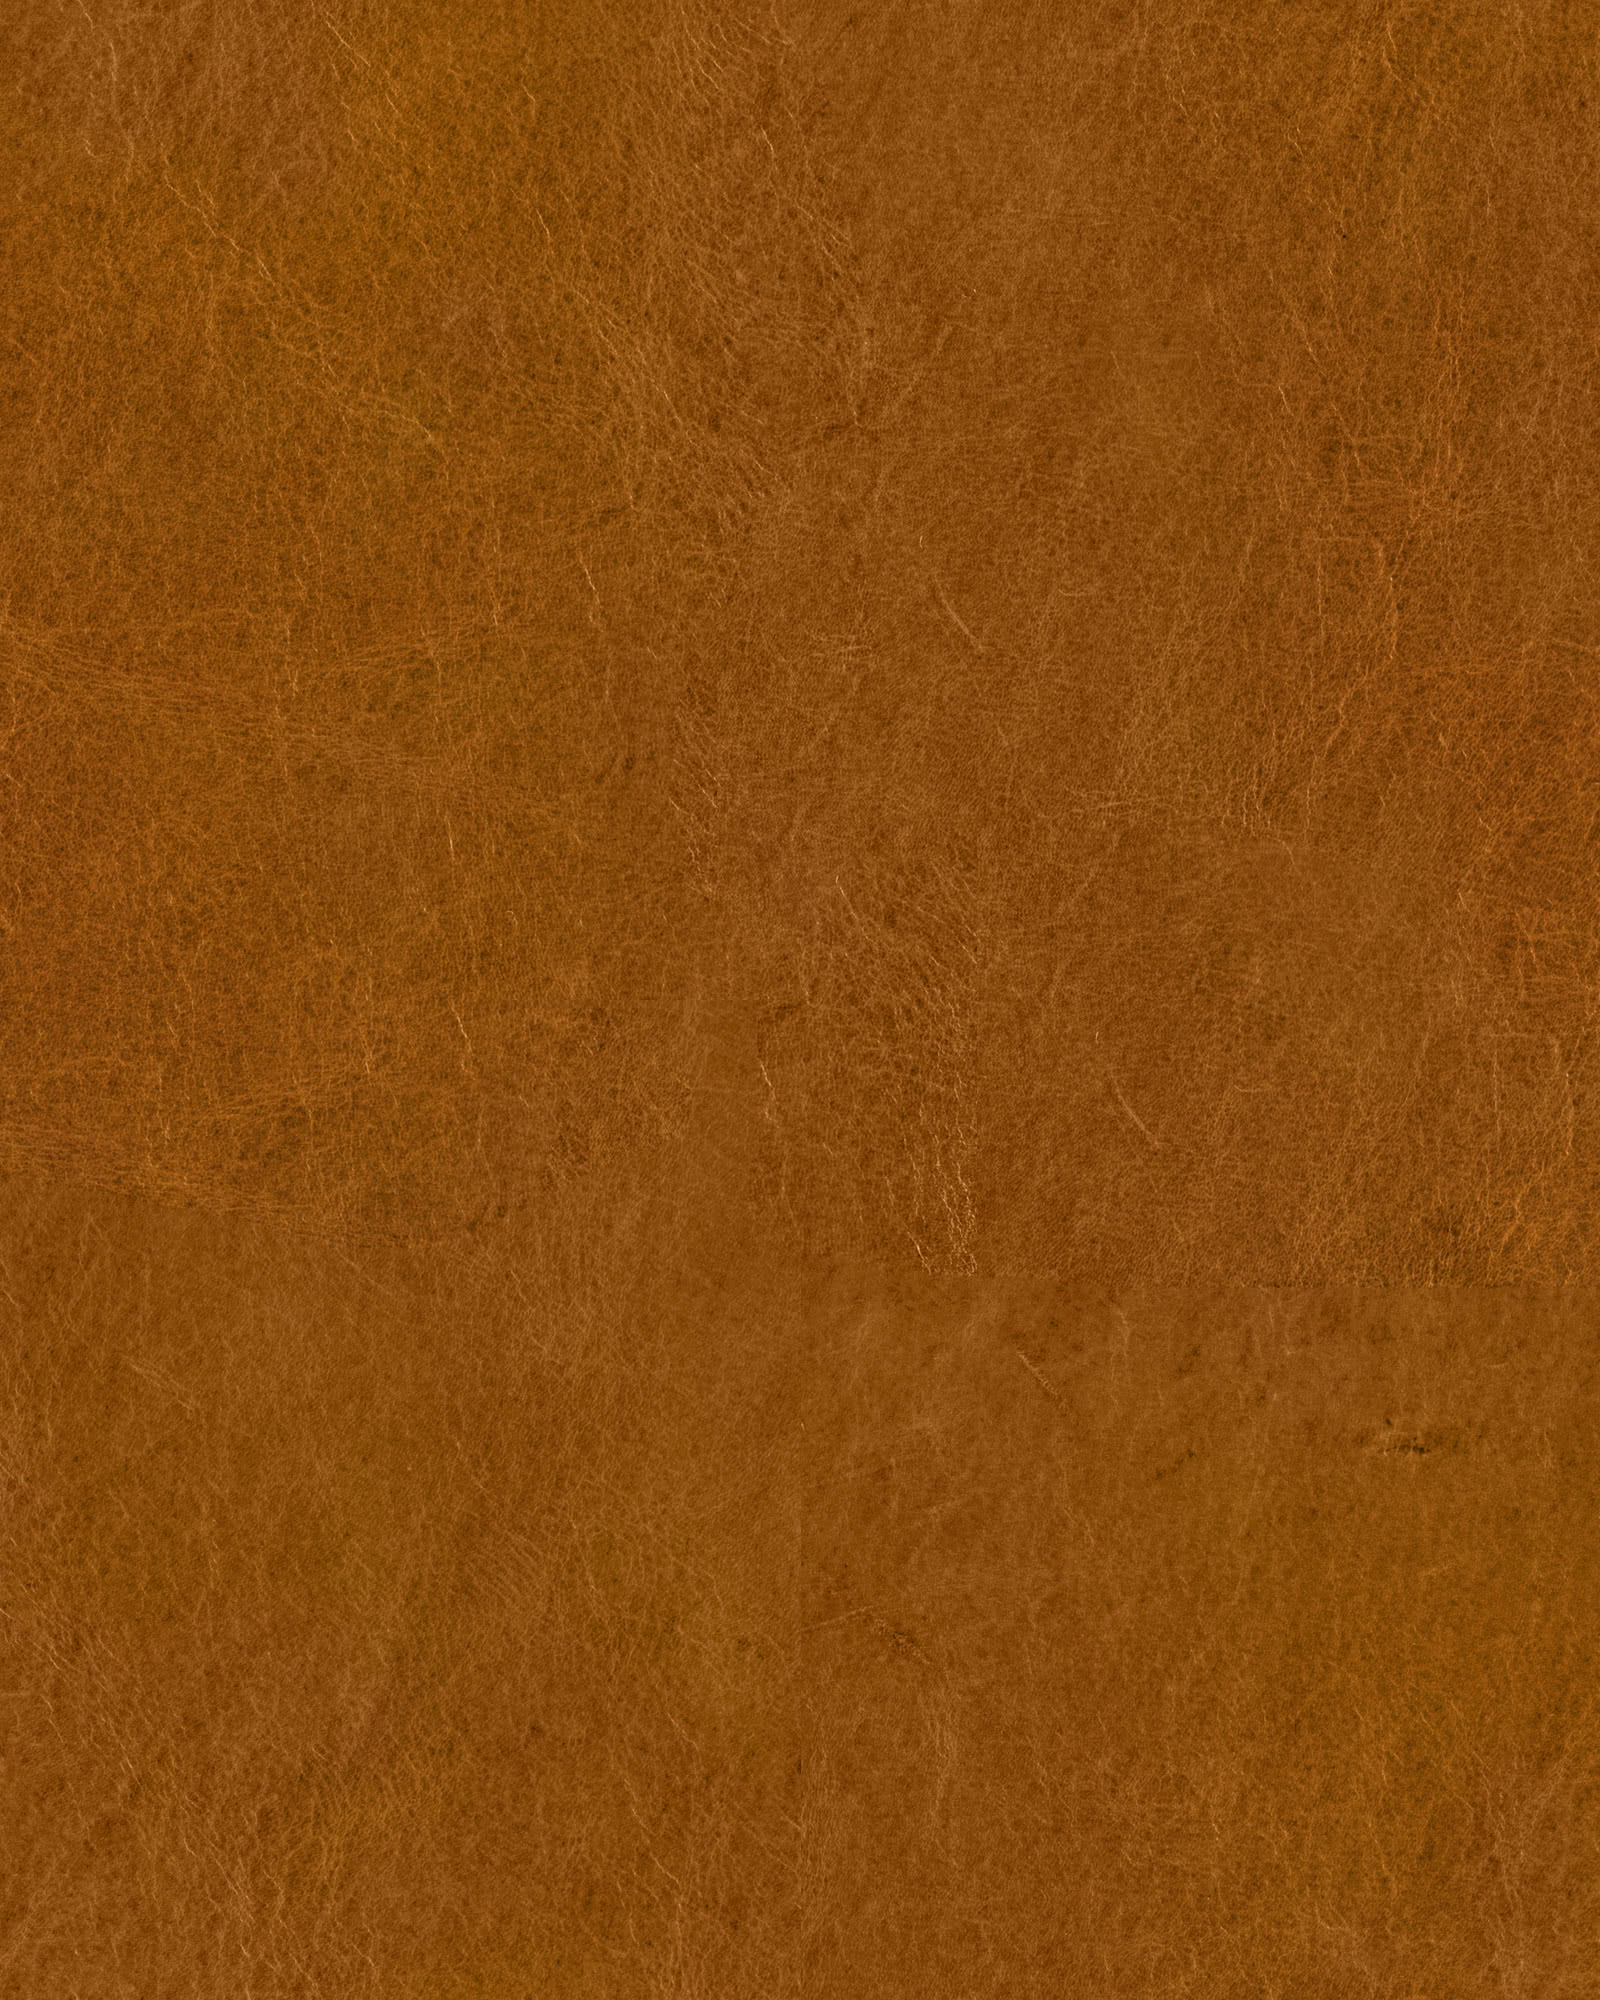 Distressed Leather - Chestnut